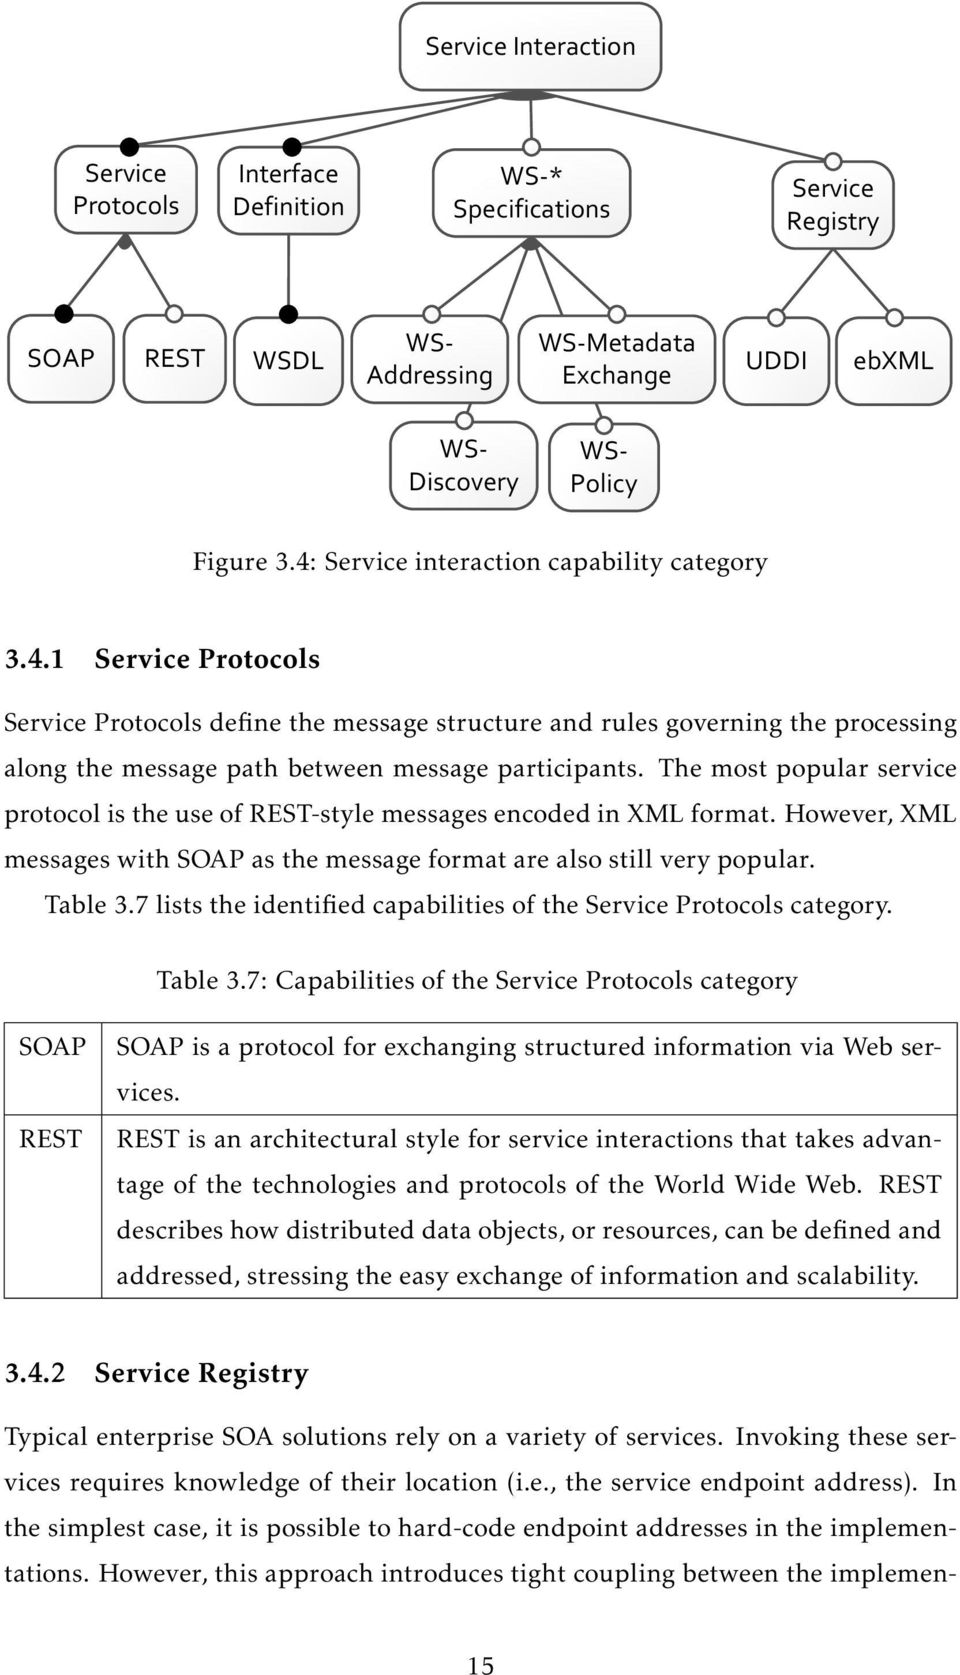 The most popular service protocol is the use of REST-style messages encoded in XML format. However, XML messages with SOAP as the message format are also still very popular. Table 3.